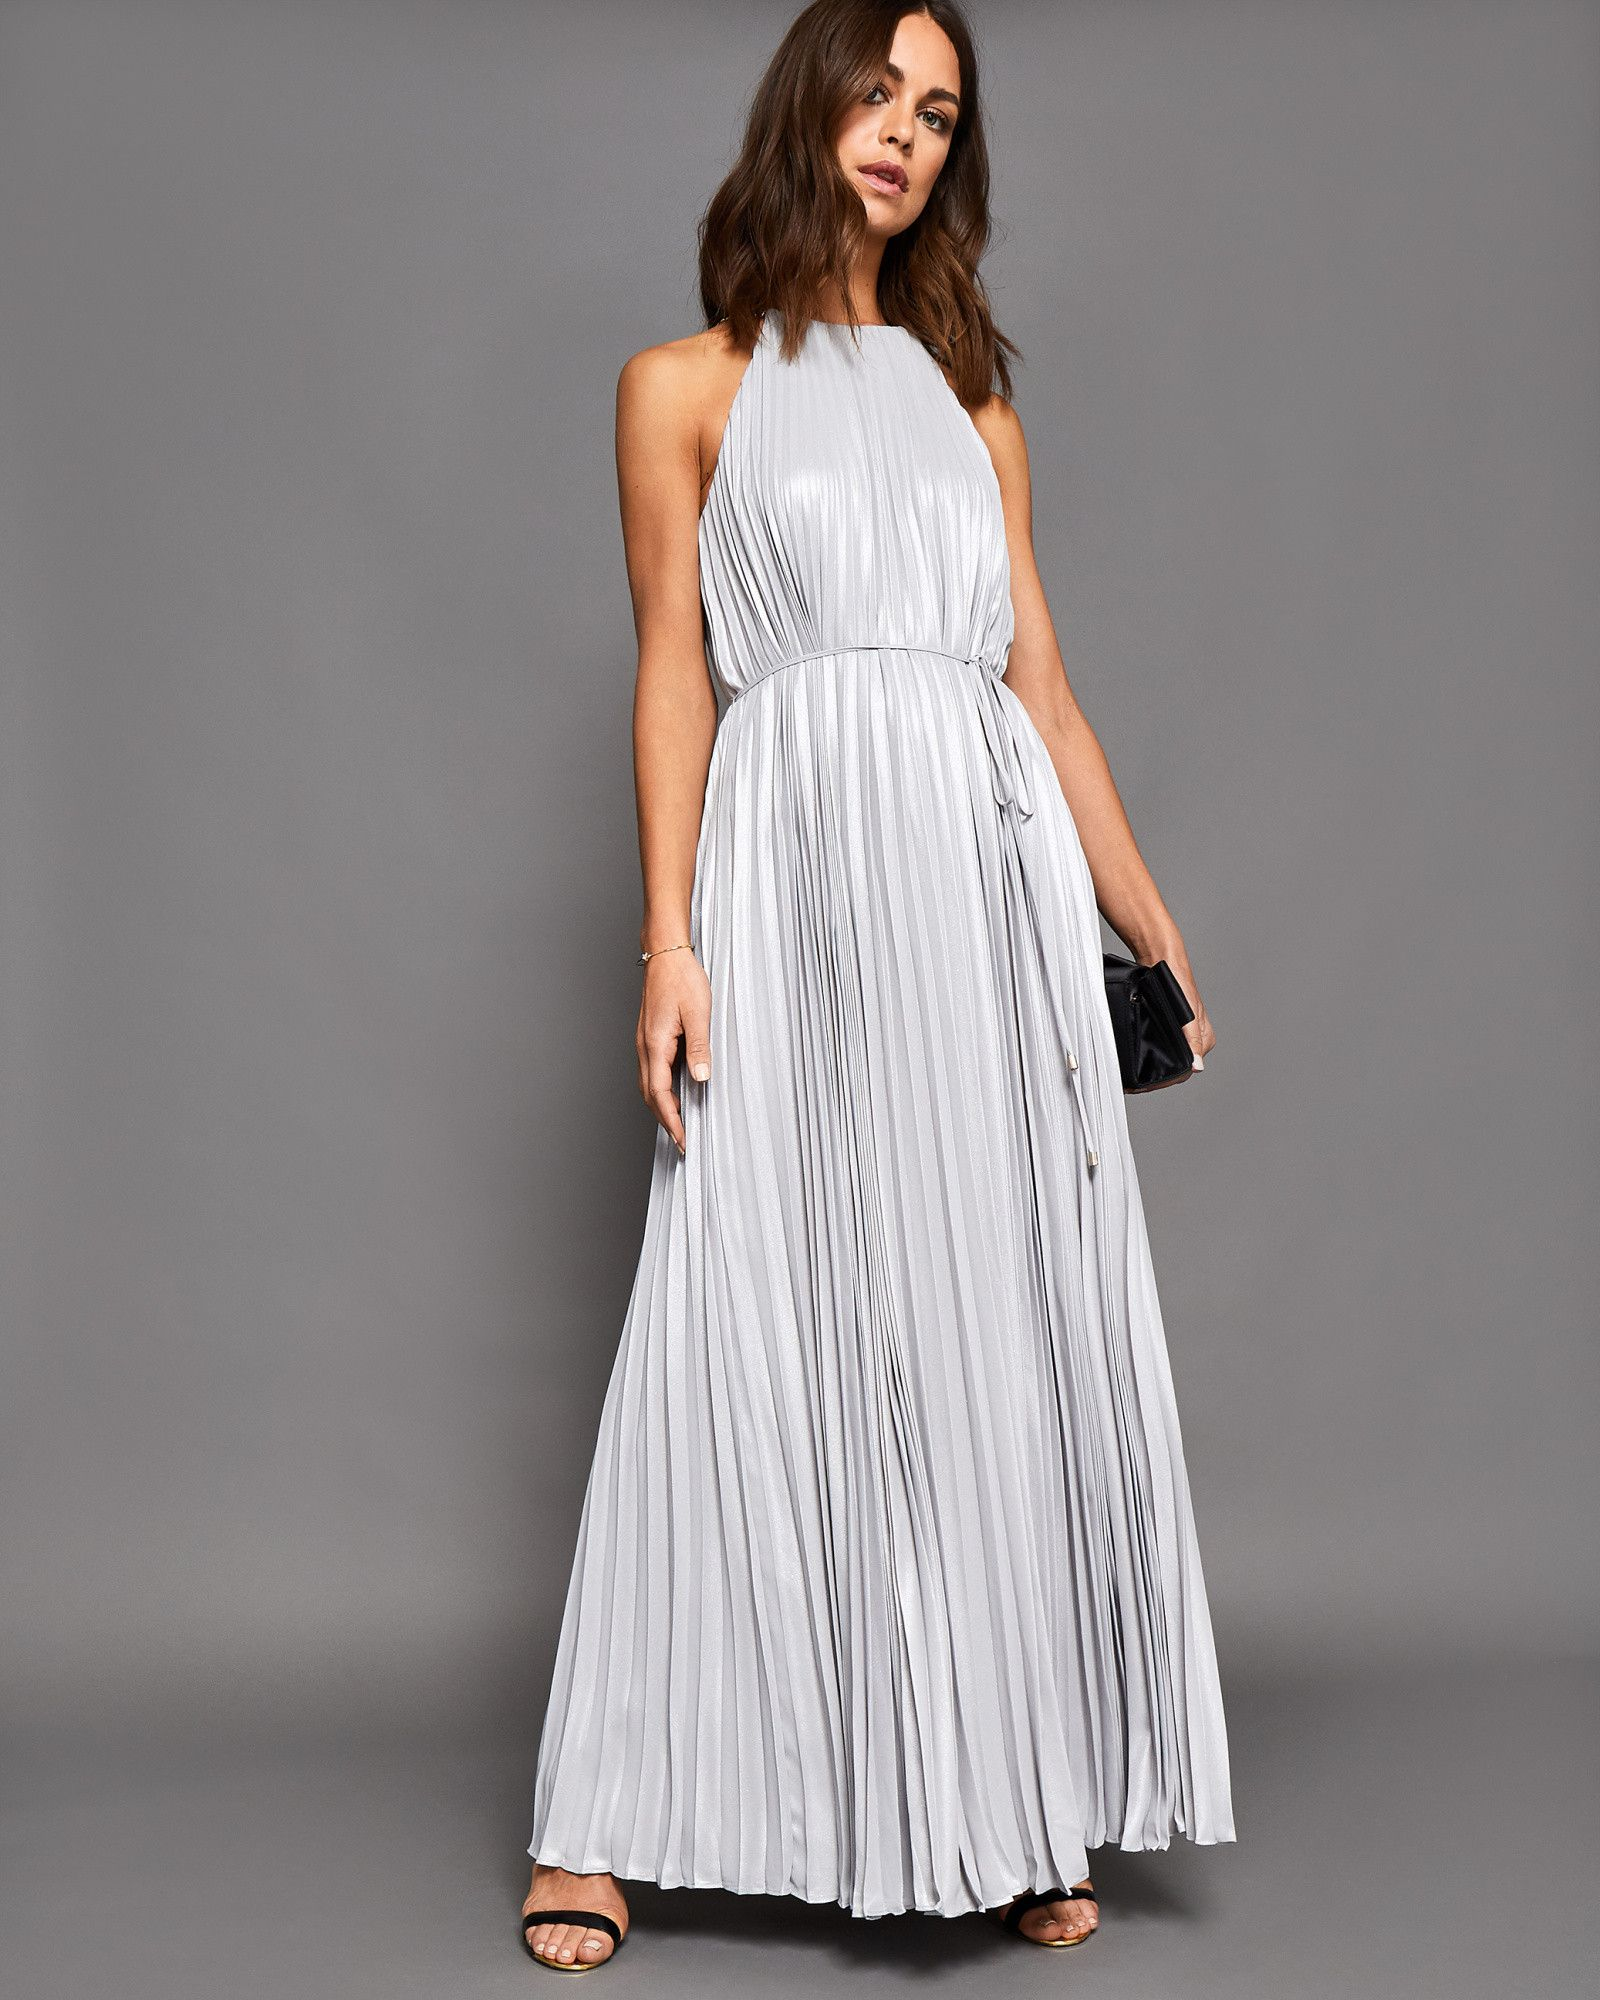 859db7a70e1 Ted Baker Metallic pleated maxi dress Silver